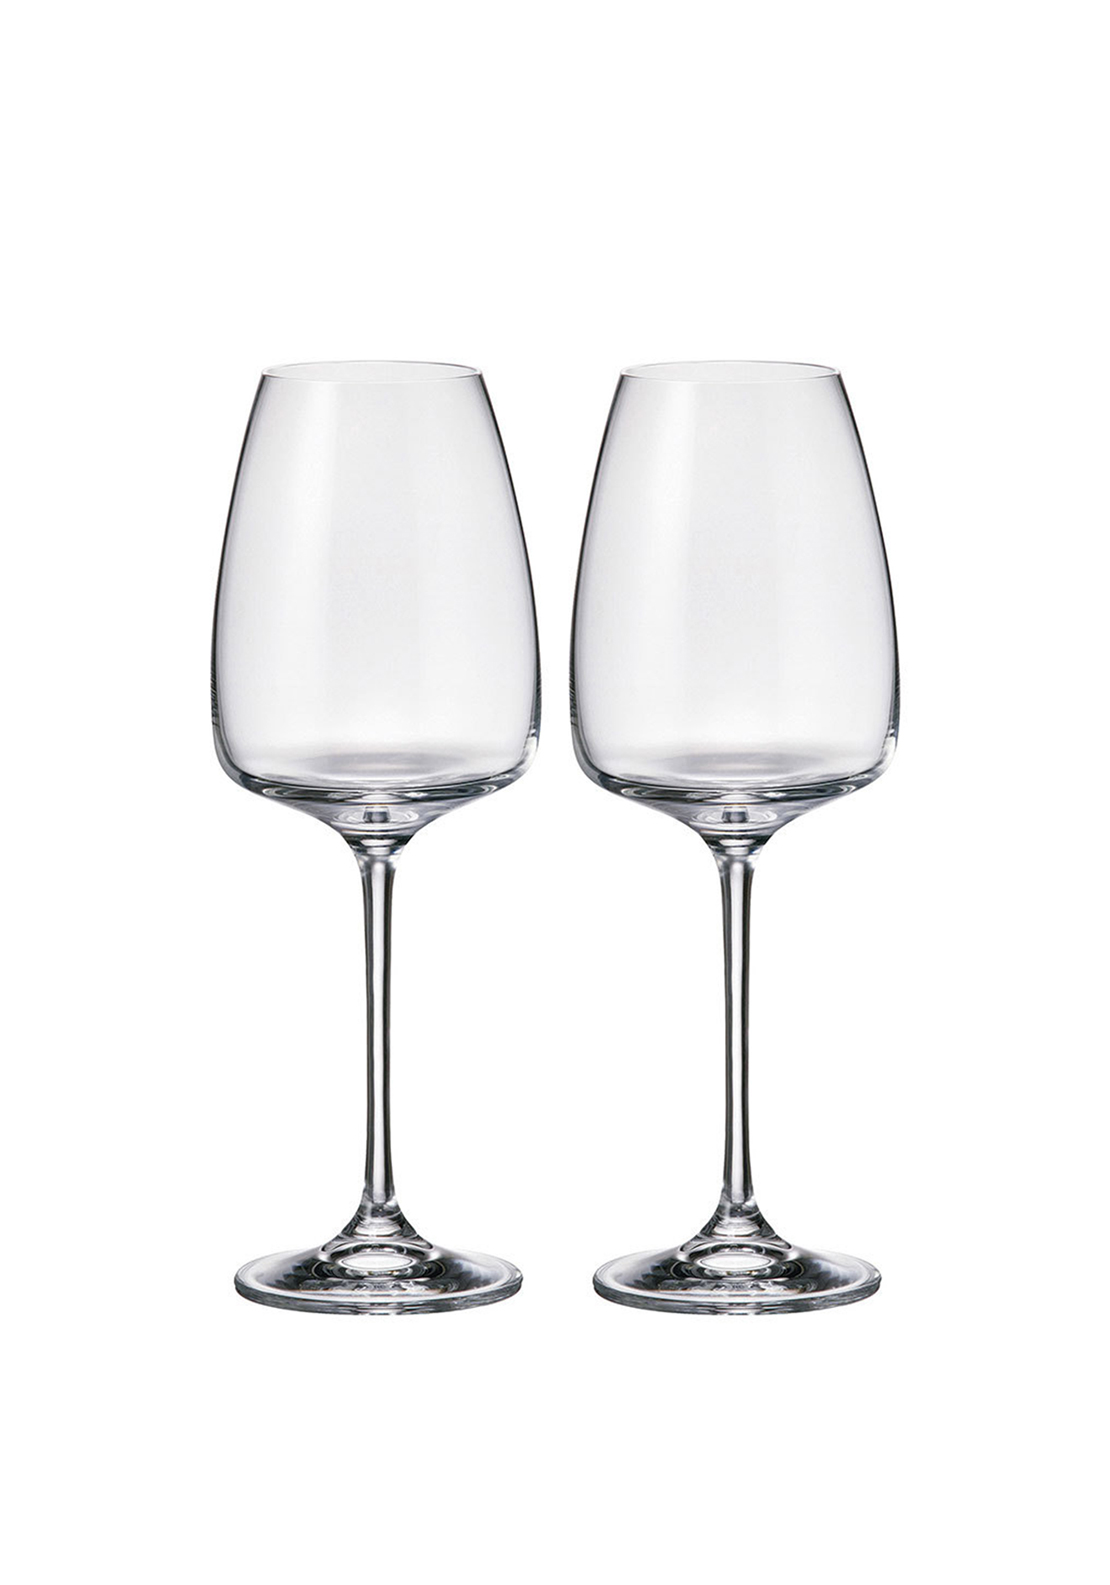 Tipperary Crystal Connoisseur Set of 2 White Wine Glasses 440ml Gift Box